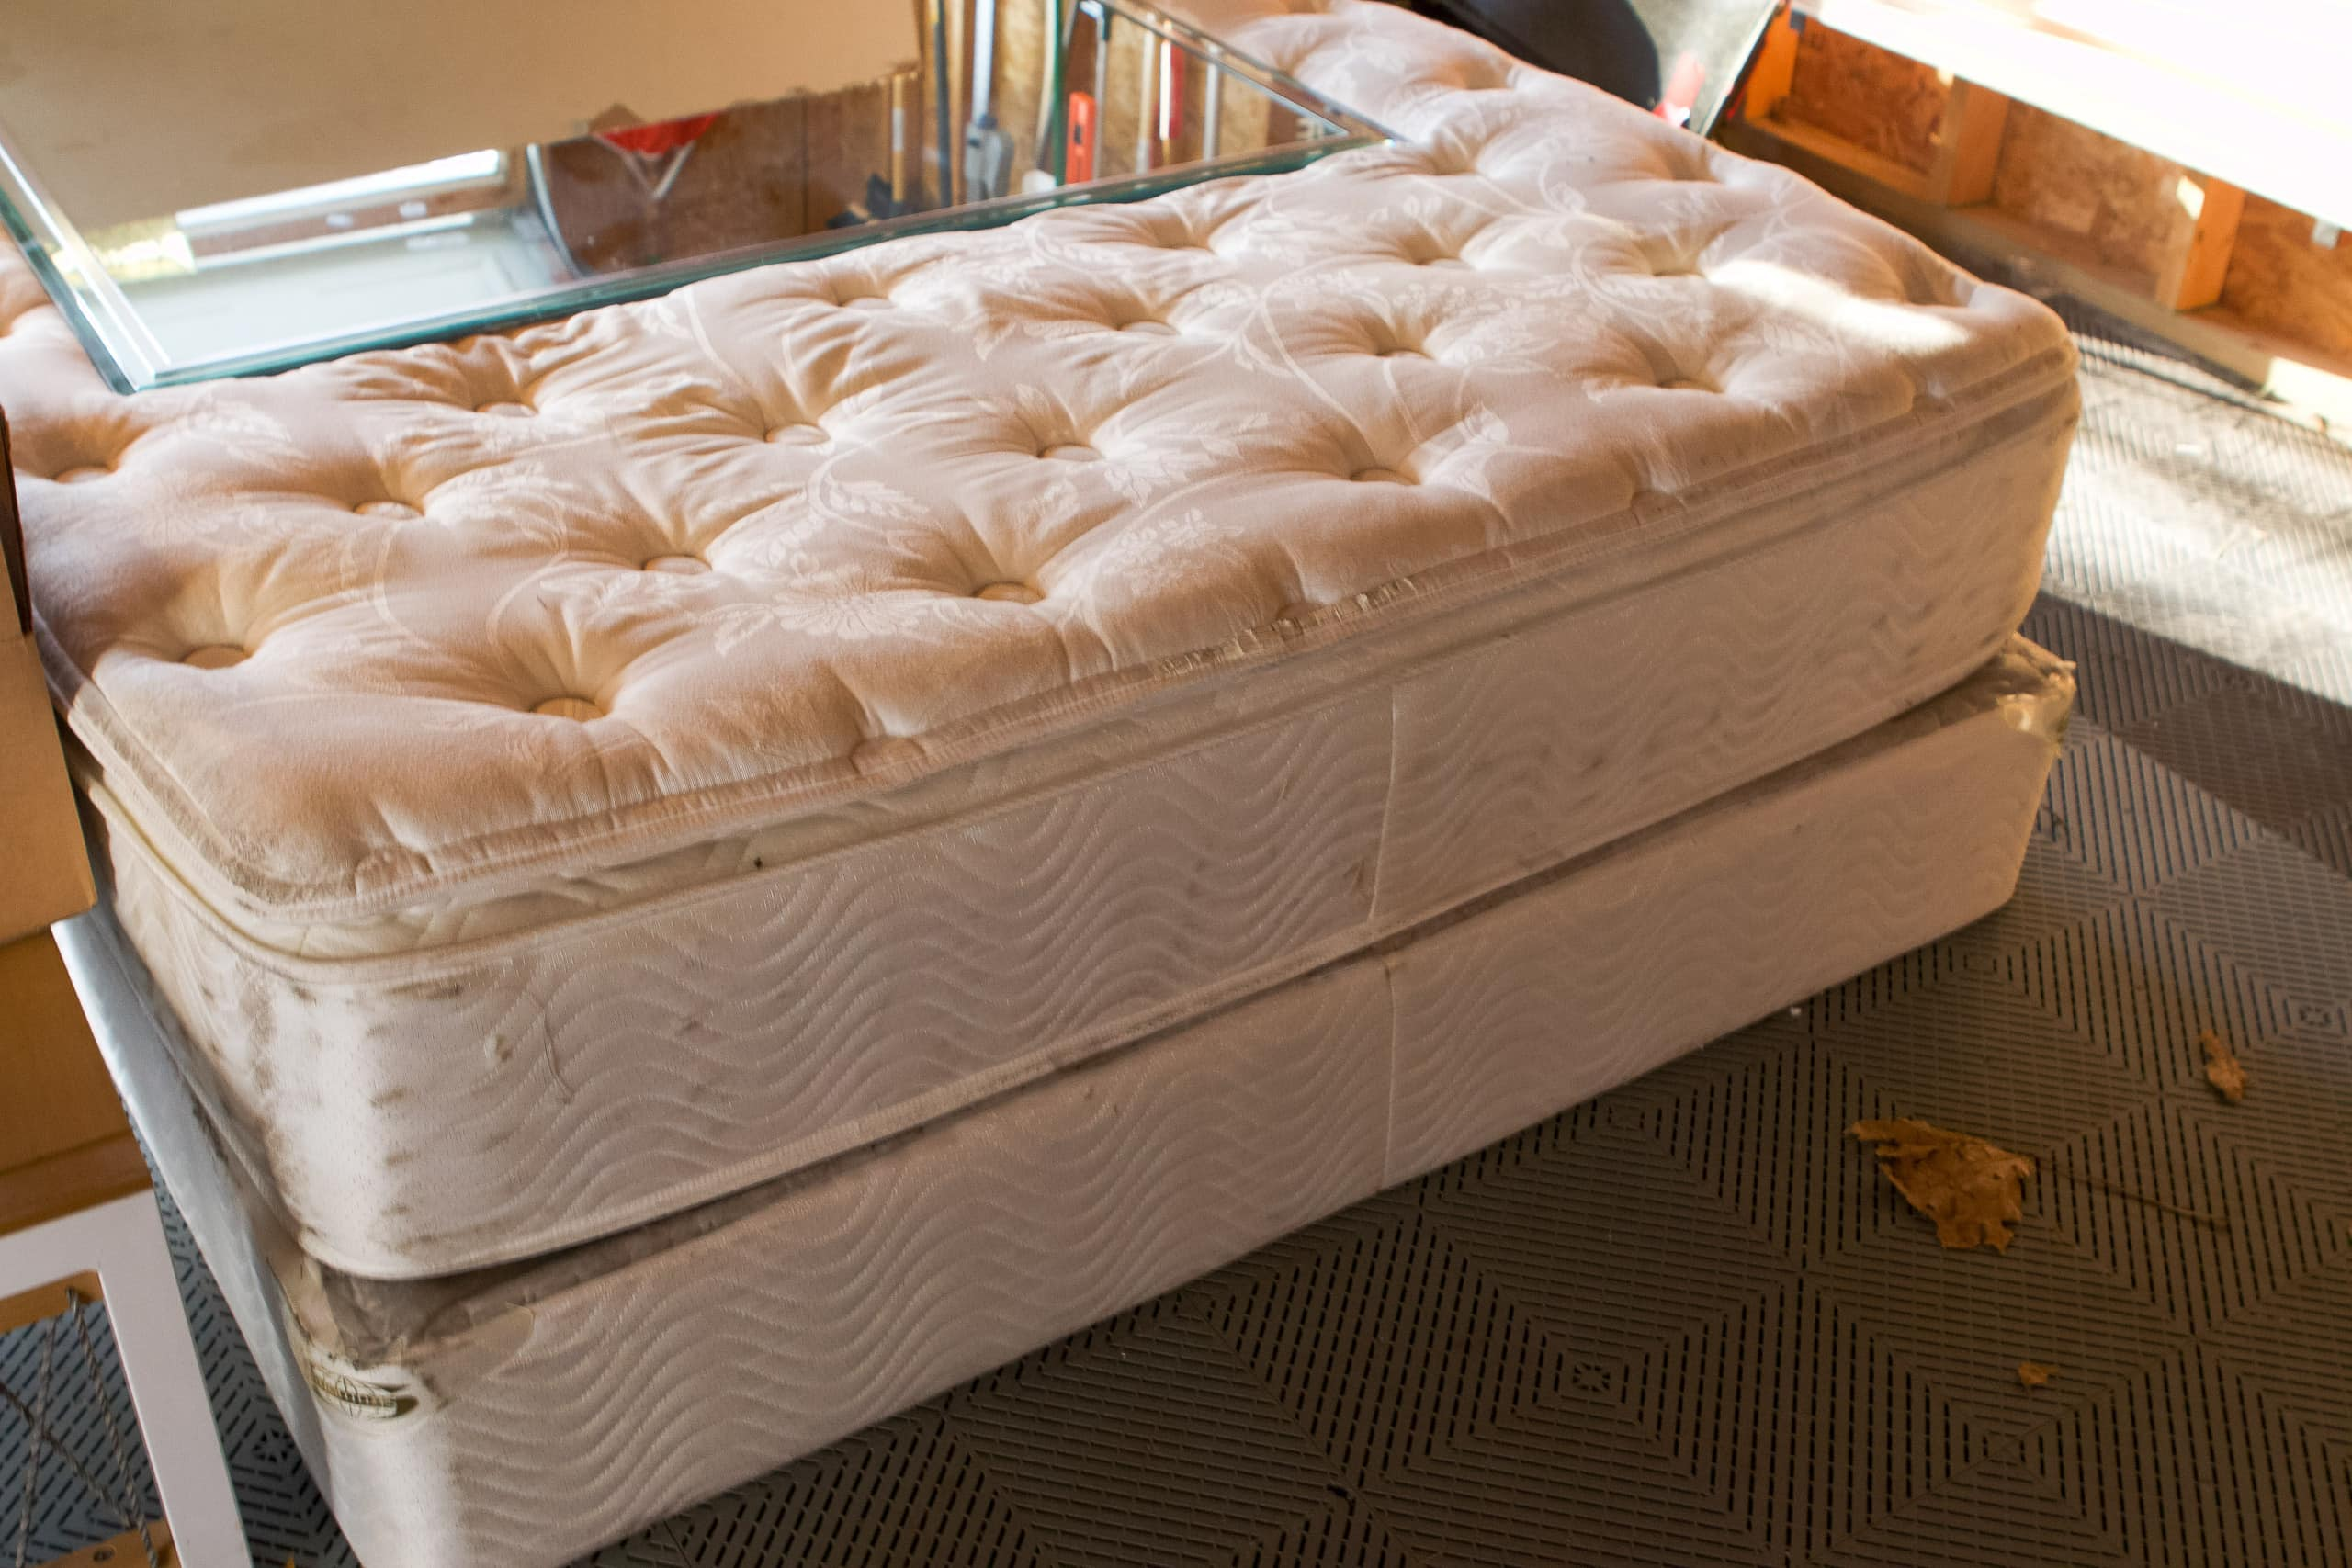 Our old mattress